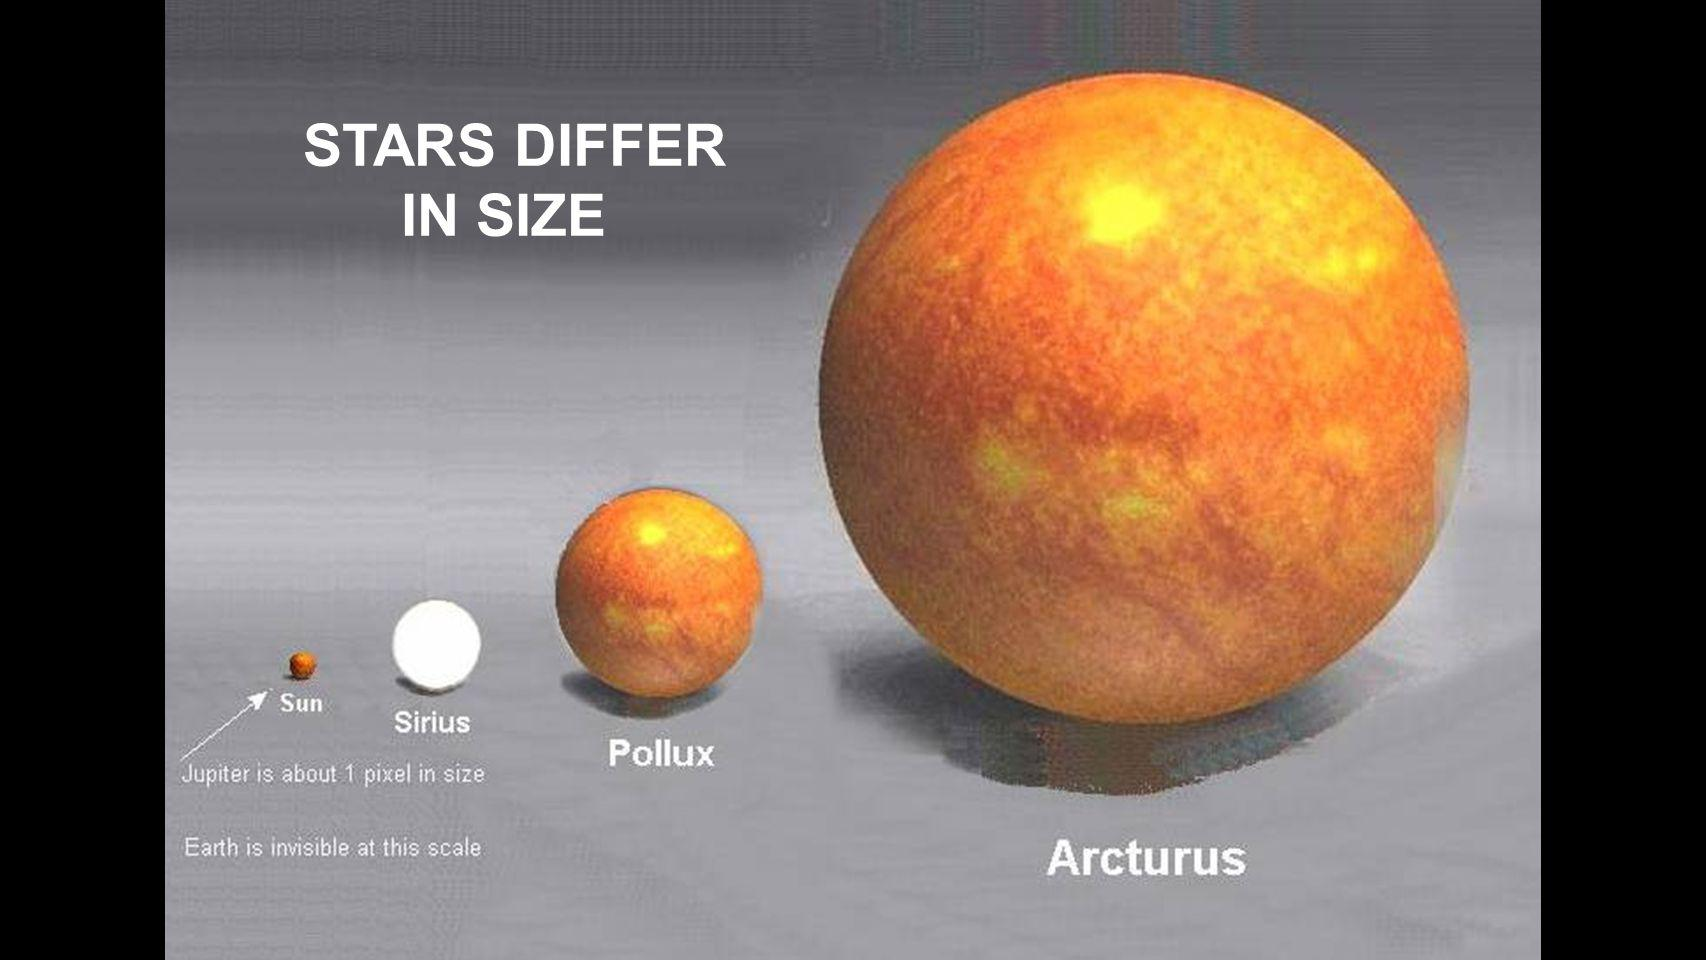 STARS DIFFER IN SIZE